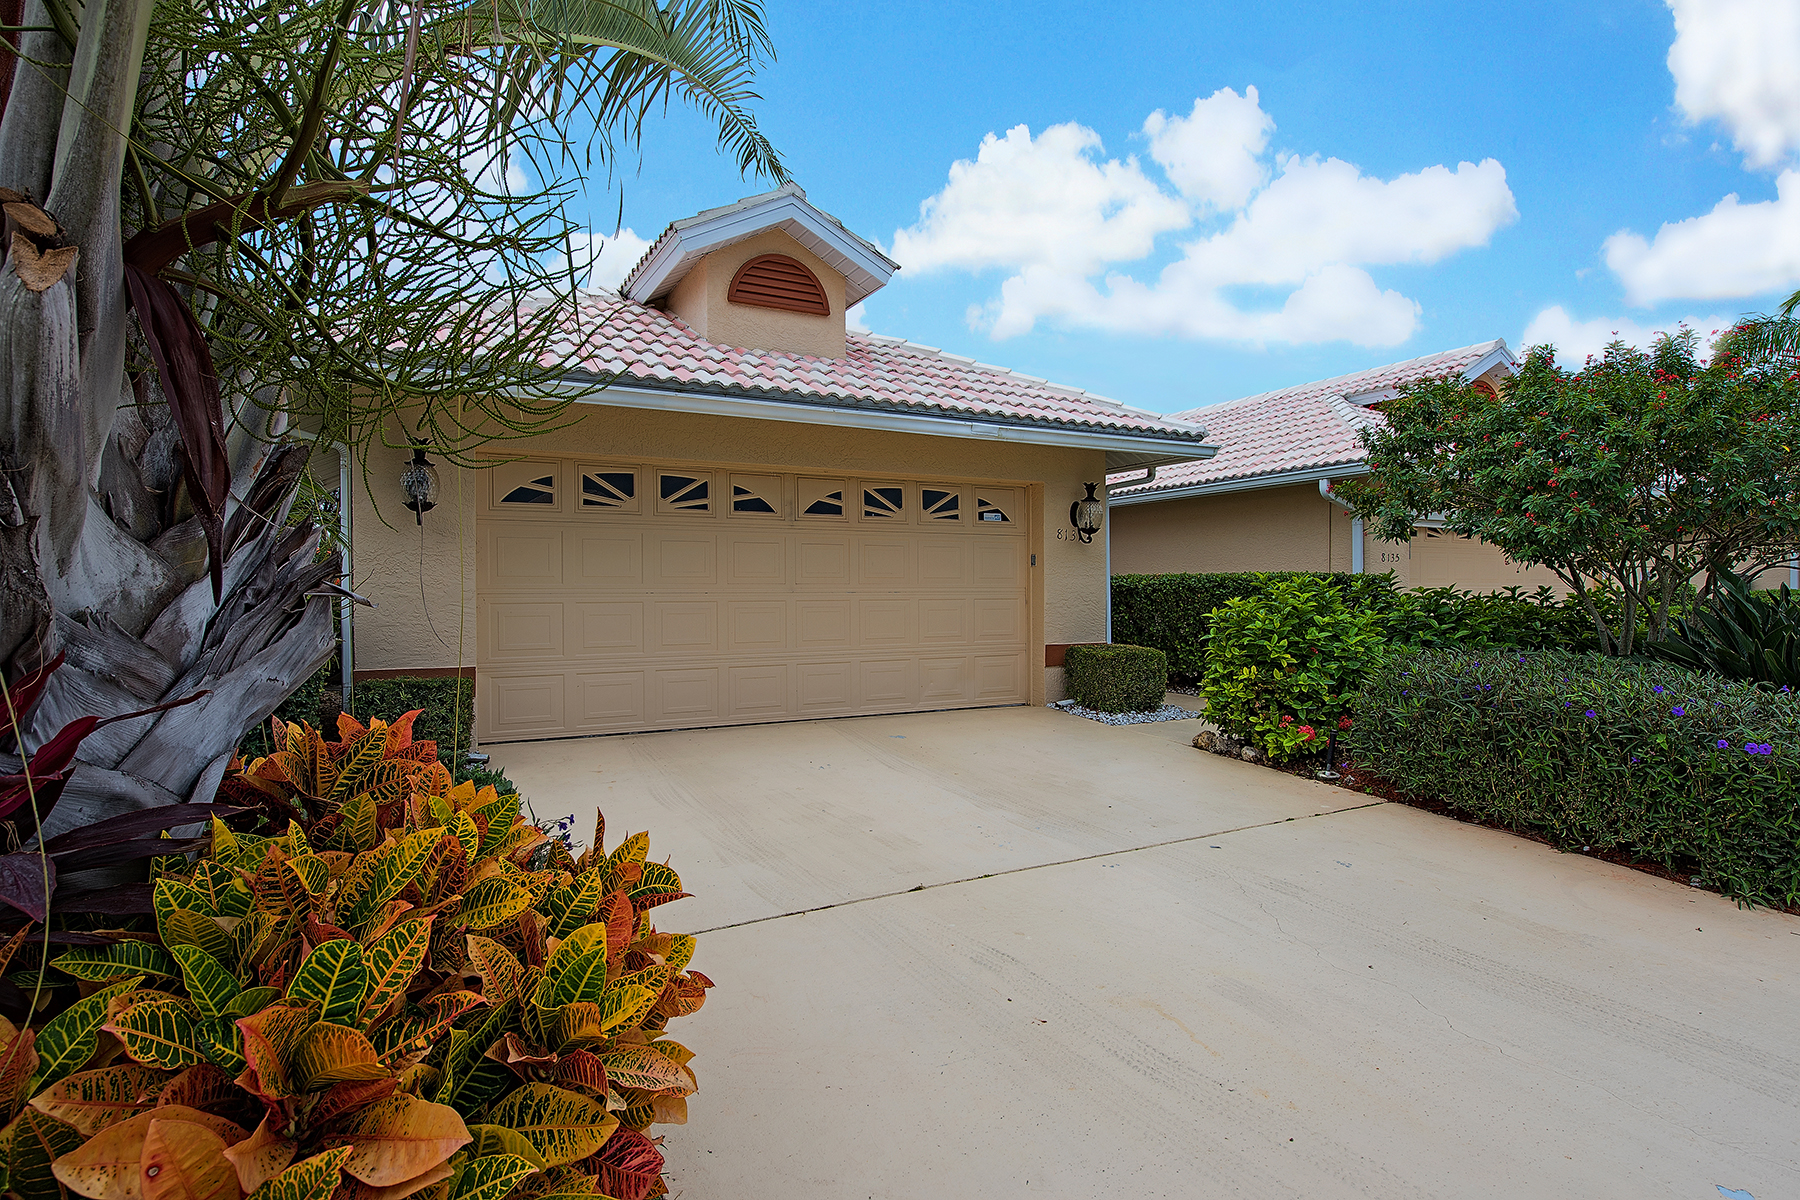 Townhouse for Sale at LELY COUNTRY CLUB - PALOMINO VILLAGE 8131 Palomino Dr Naples, Florida, 34113 United States